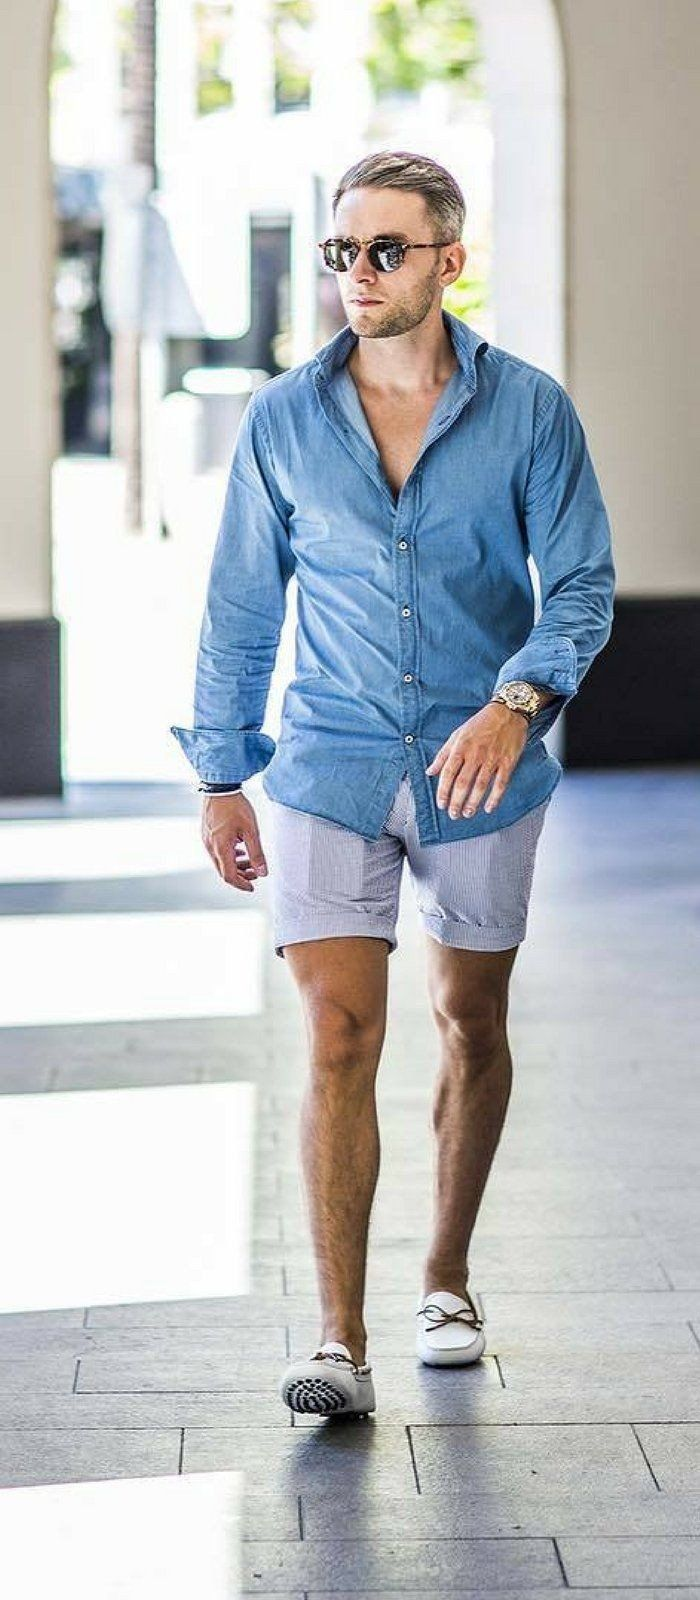 coolest summer outfit ideas for men – ps 1983  cool